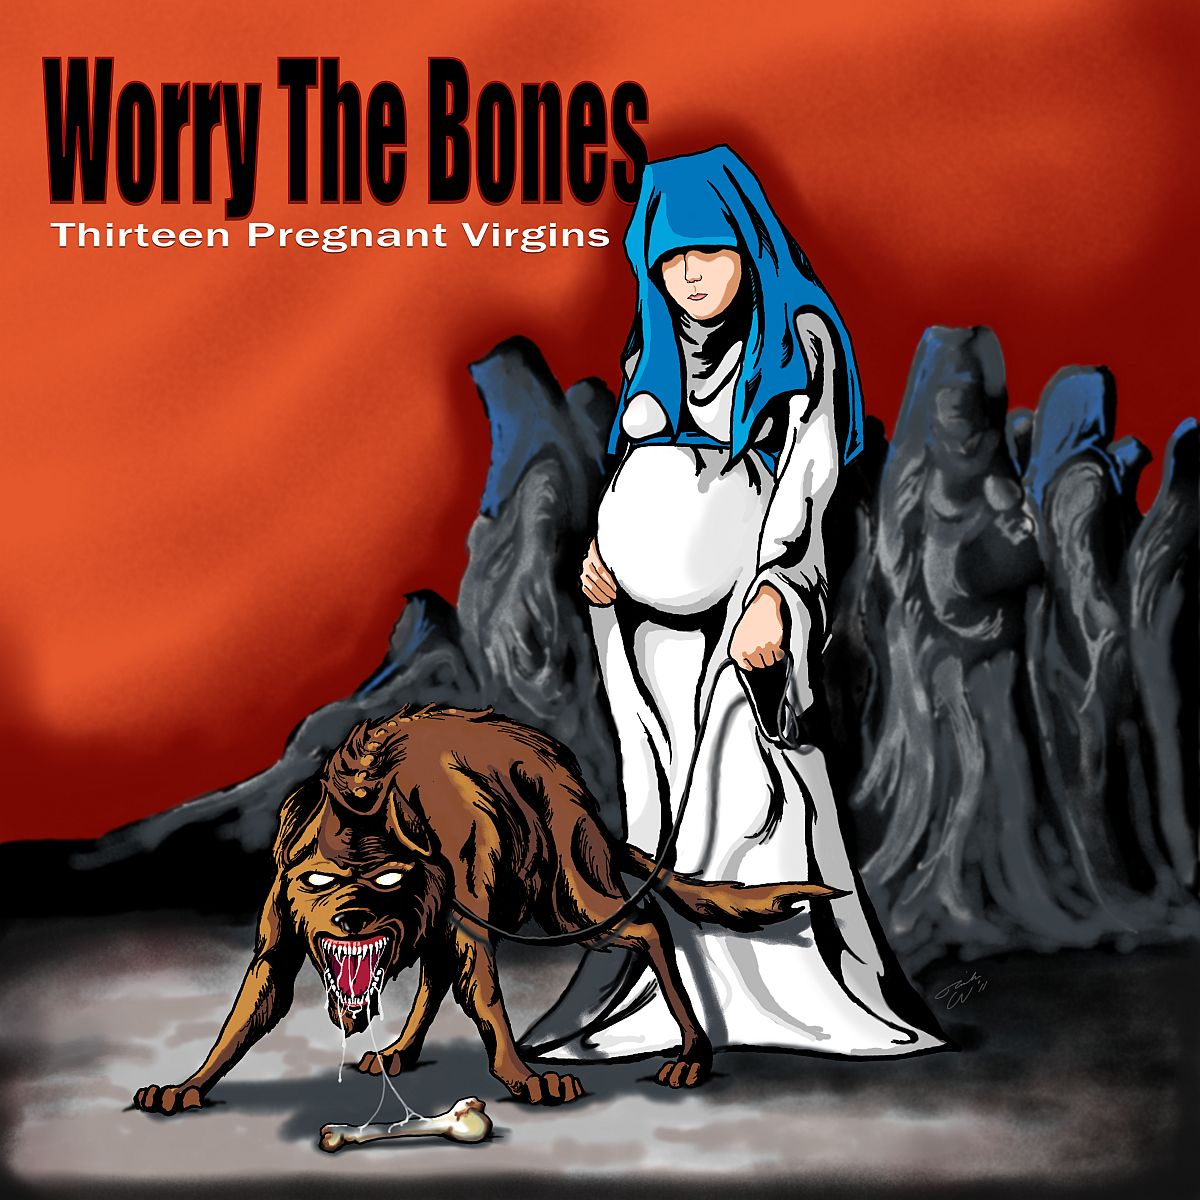 """Featuring the track """"Damage Me"""" by Worry The Bones. Off of the album """"Thirteen Pregnant Virgins""""."""